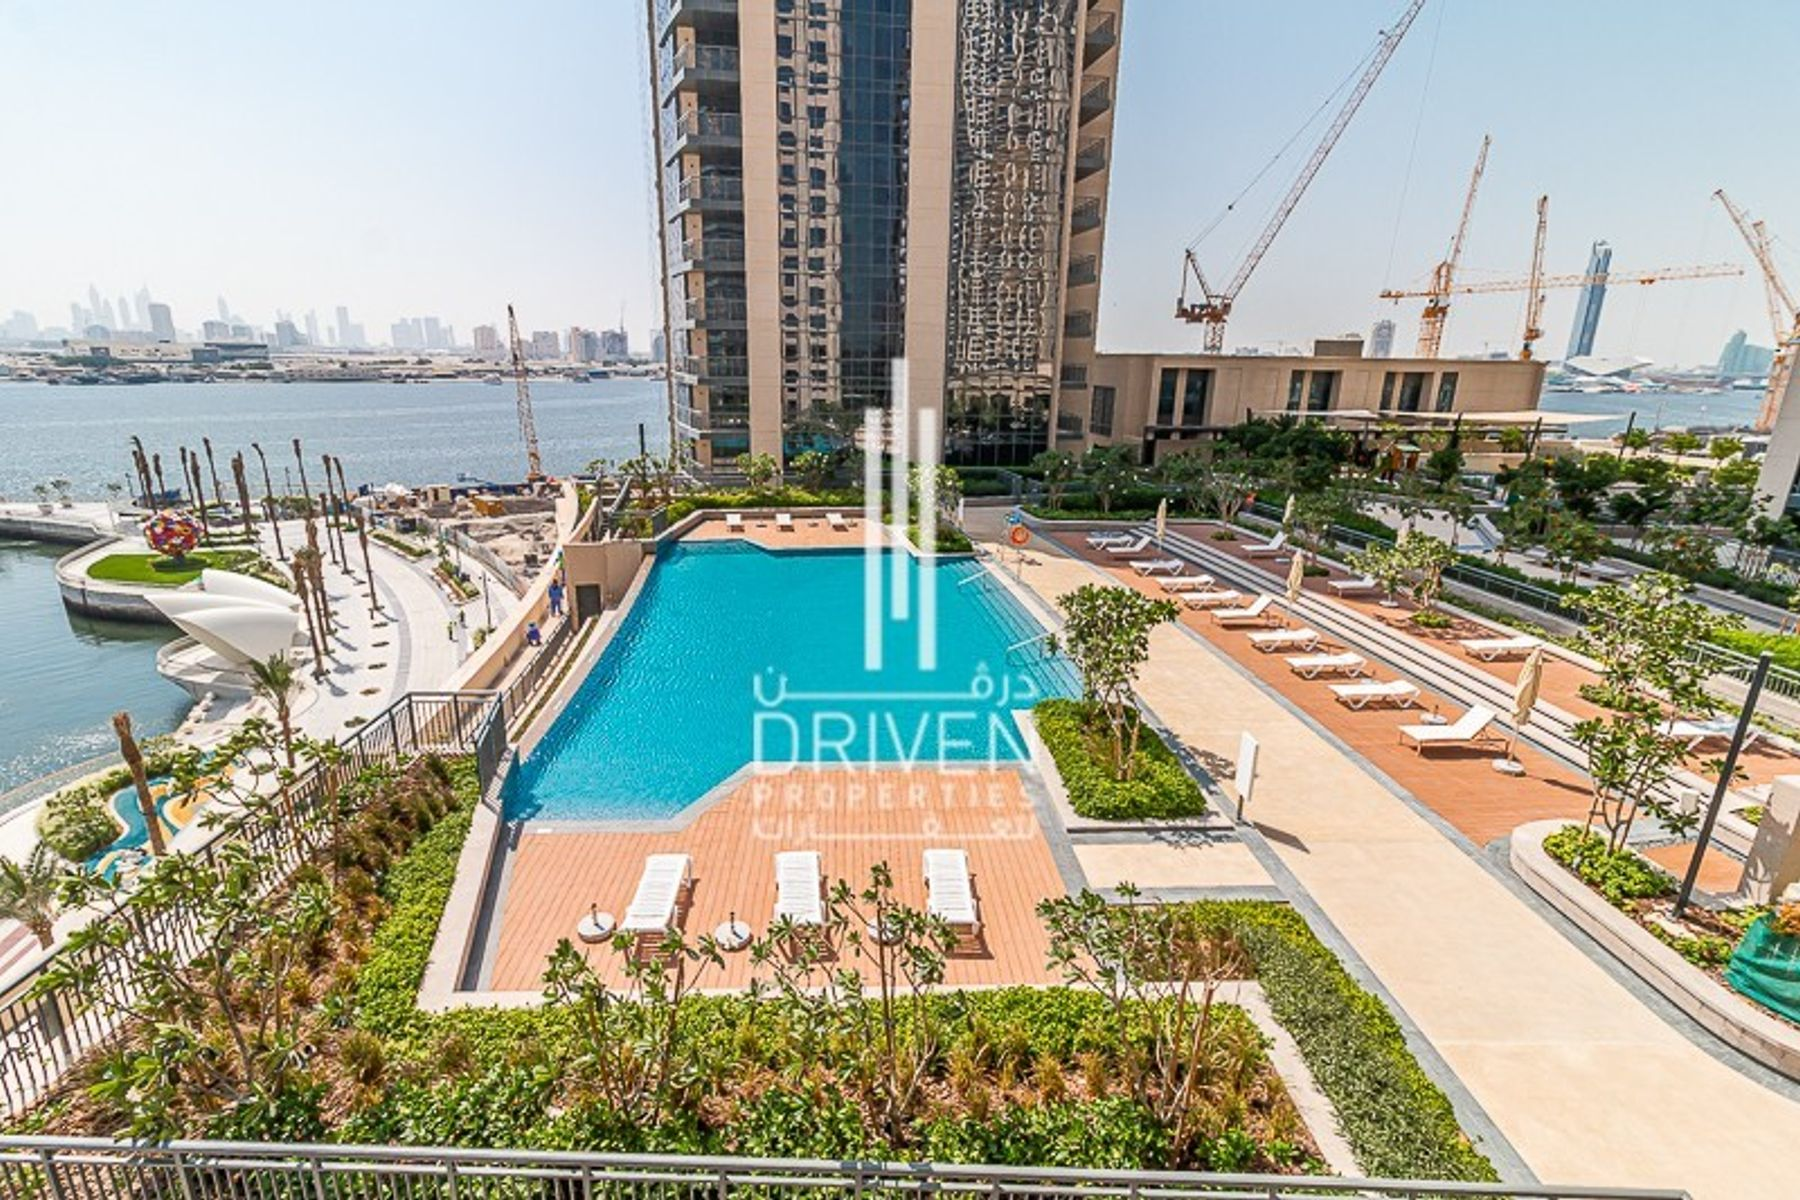 Apartment for Sale in Dubai Creek Residence Tower 2 South - Dubai Creek Harbour